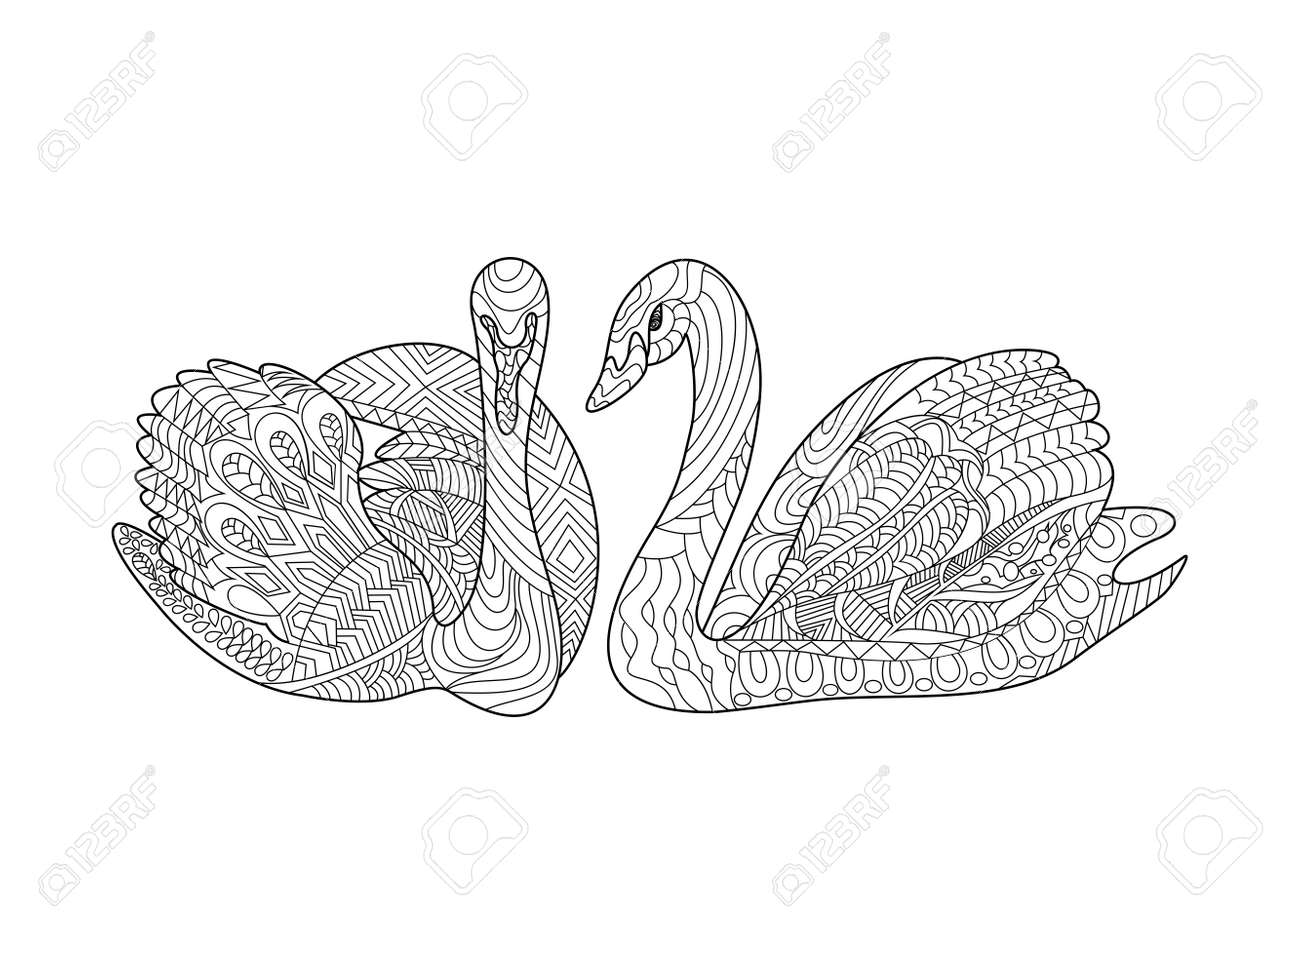 Swans Birds Coloring Book For Adults Vector Illustration. Anti ...